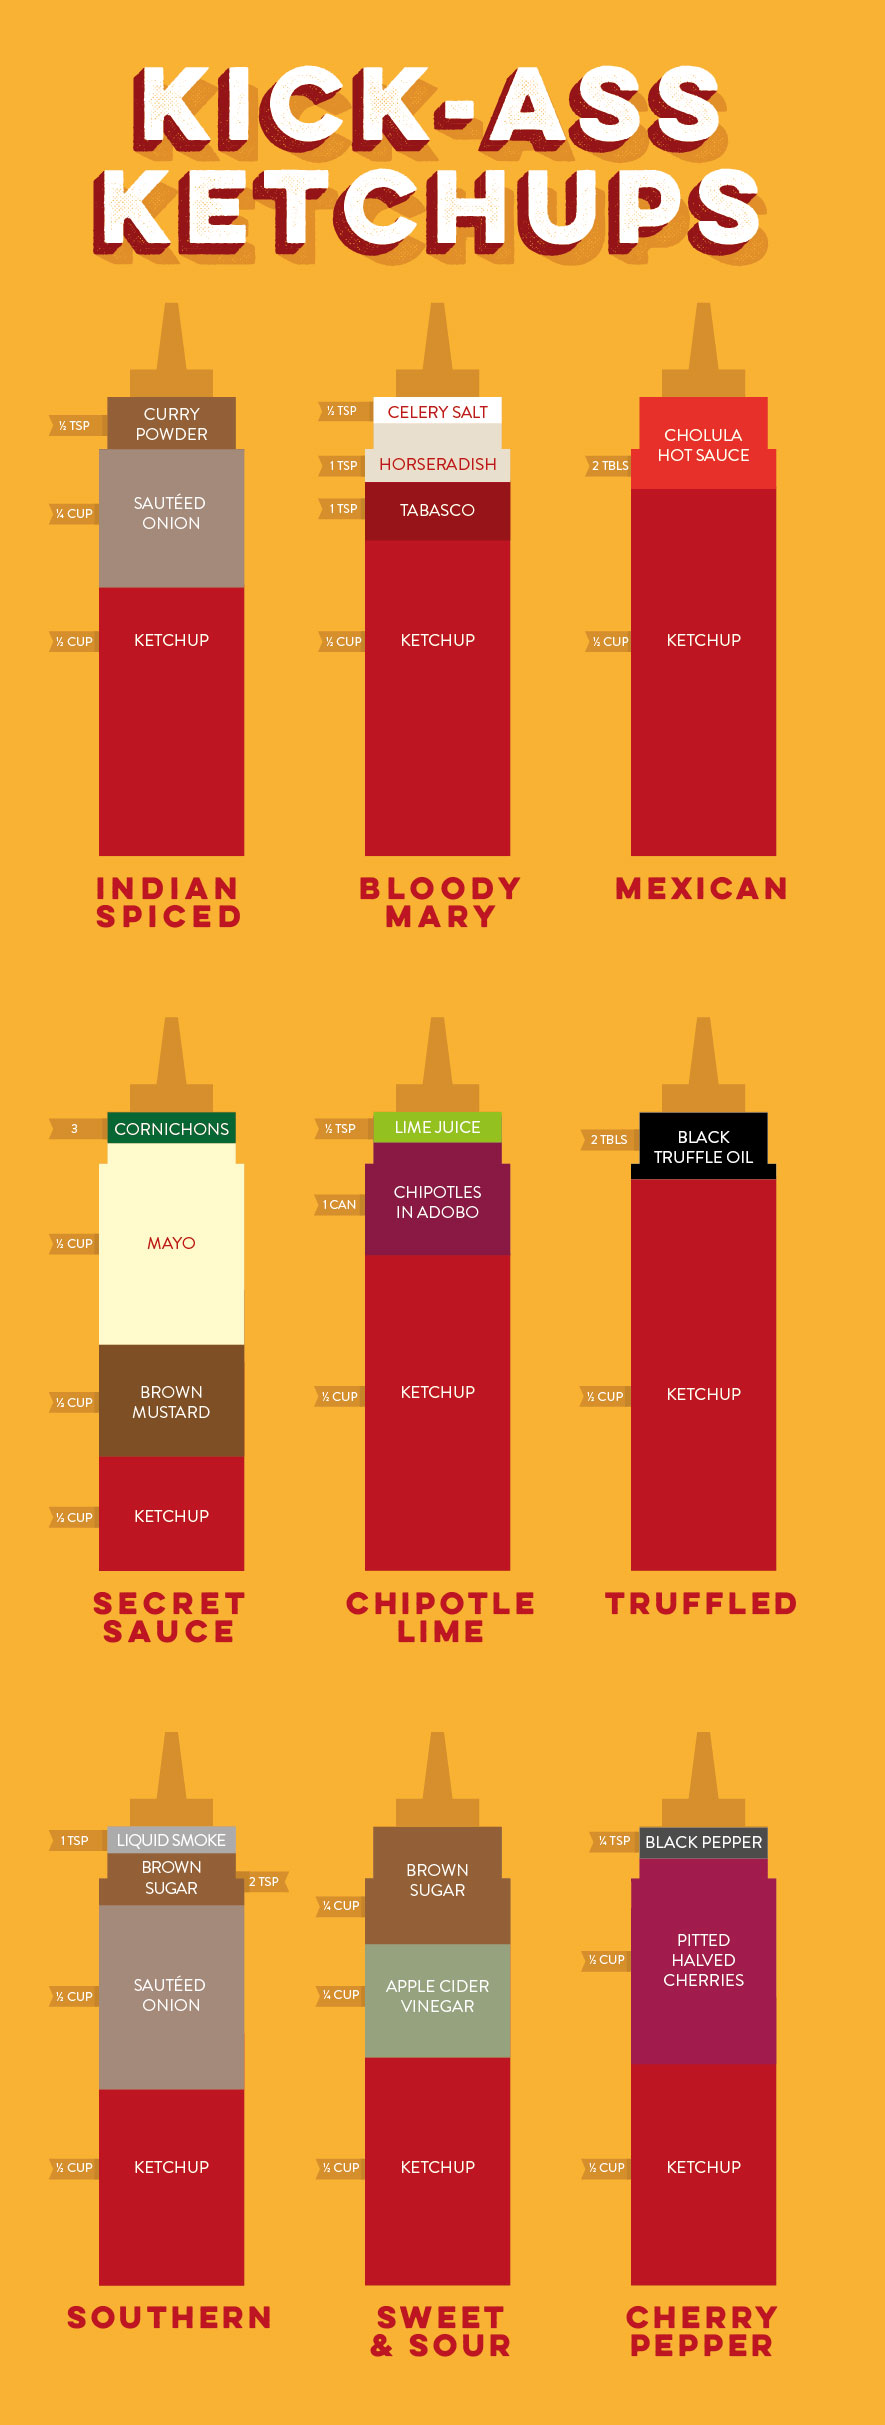 From http://www.rodalesorganiclife.com/food/ketchup-17-clean-ingredients-every-condiment-youll-ever-need